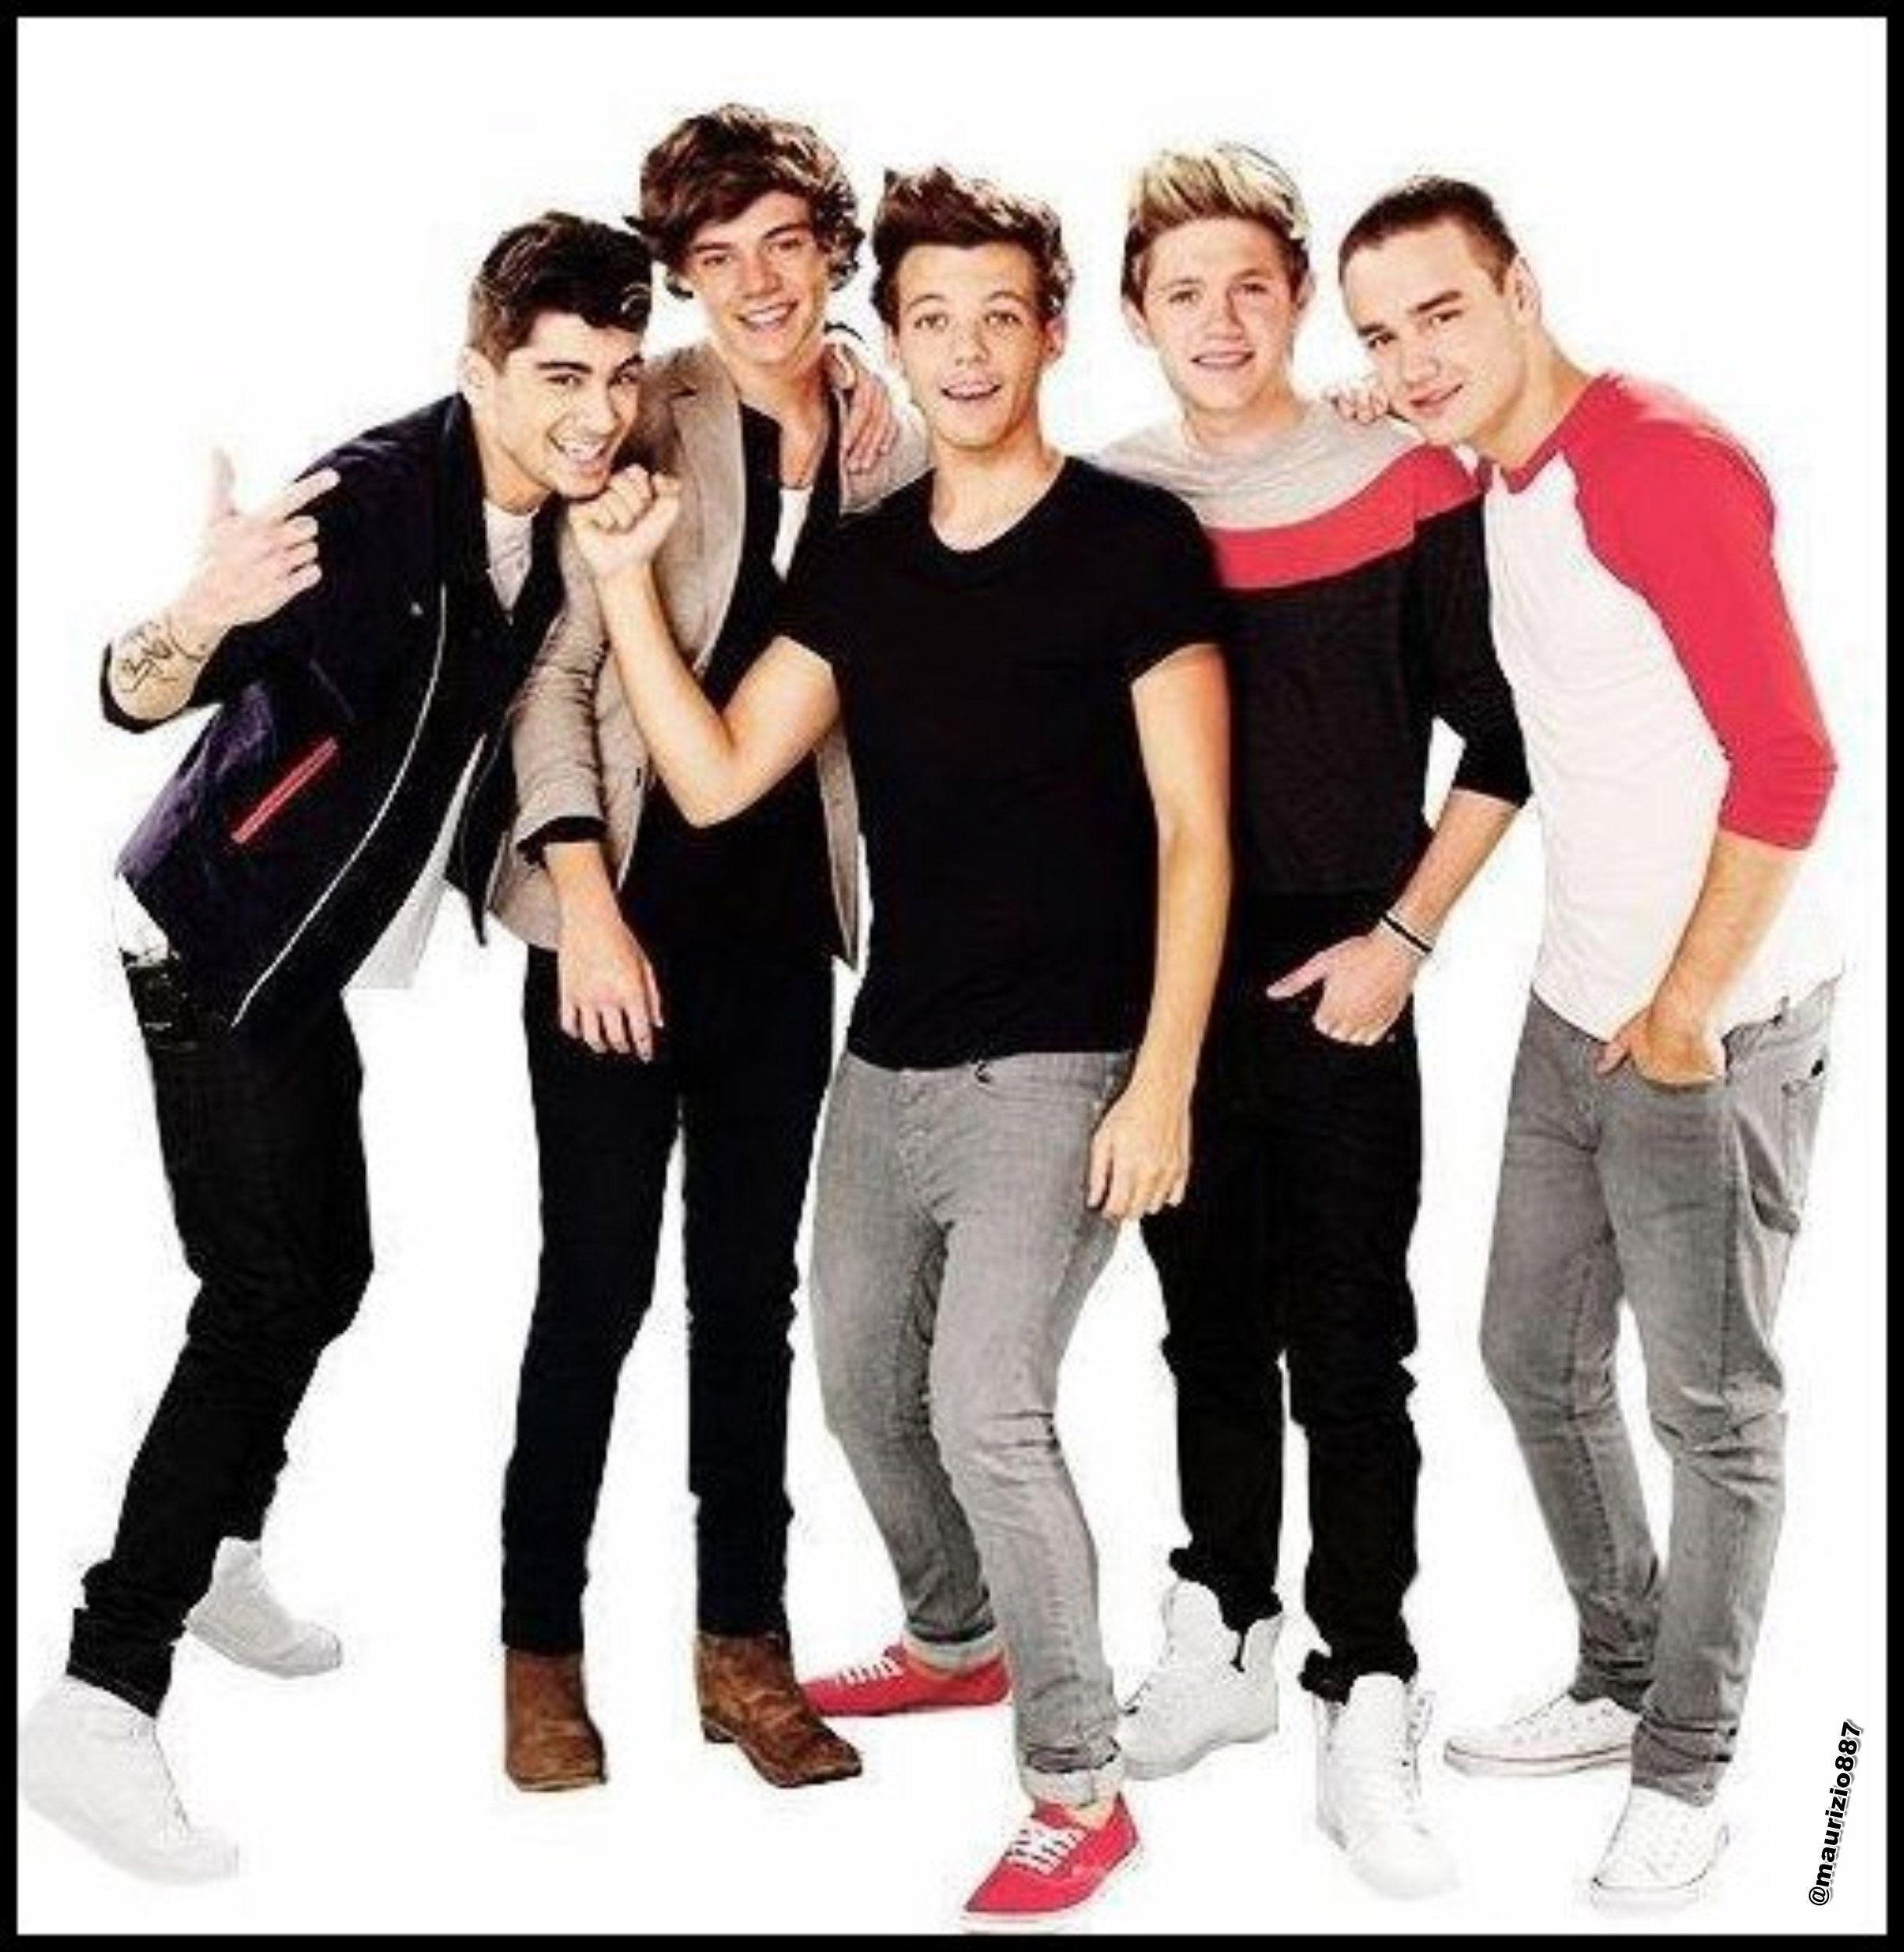 One Direction Quiz Which One Is For You -1D Boyfriend Quiz